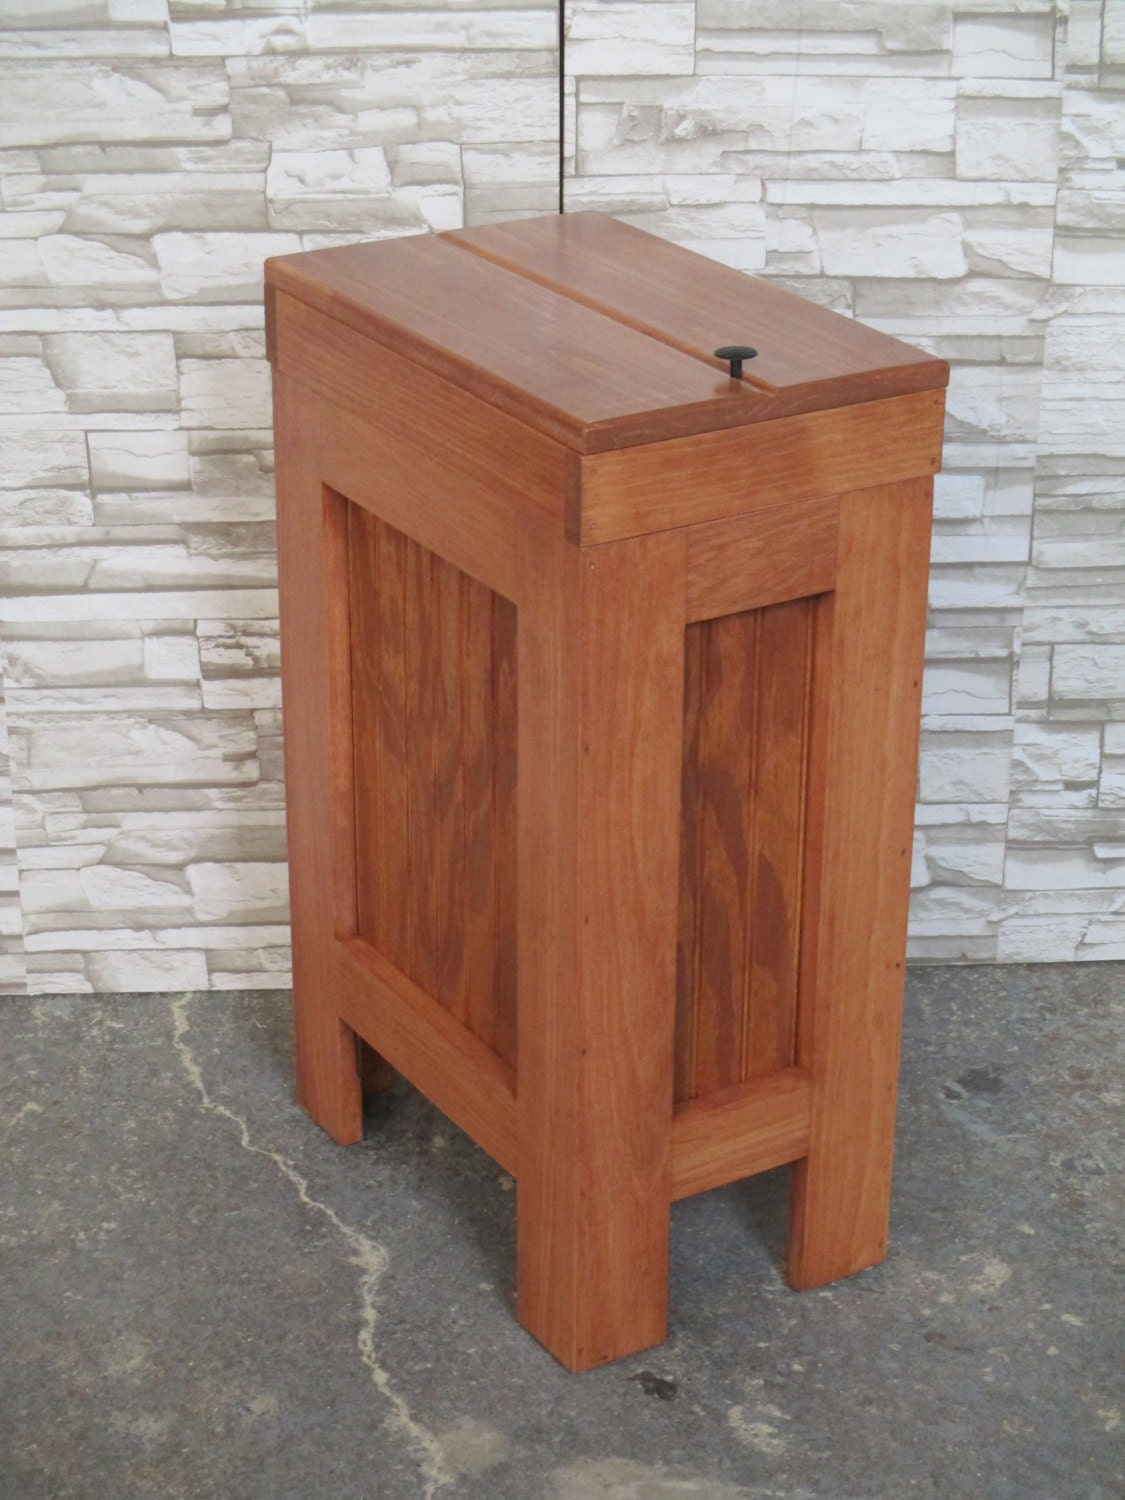 Kitchen Wood Trash Bin Wood Trash Can Wood Trash Bindog